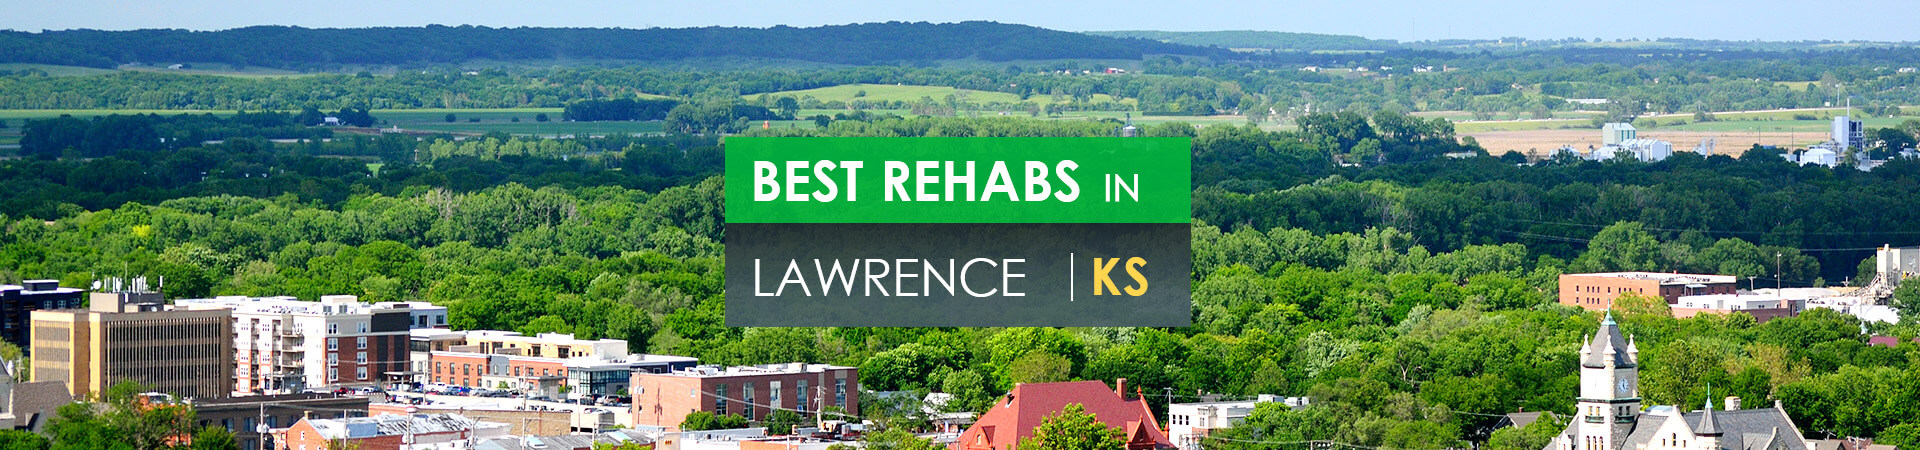 Best rehabs in Lawrence, KS